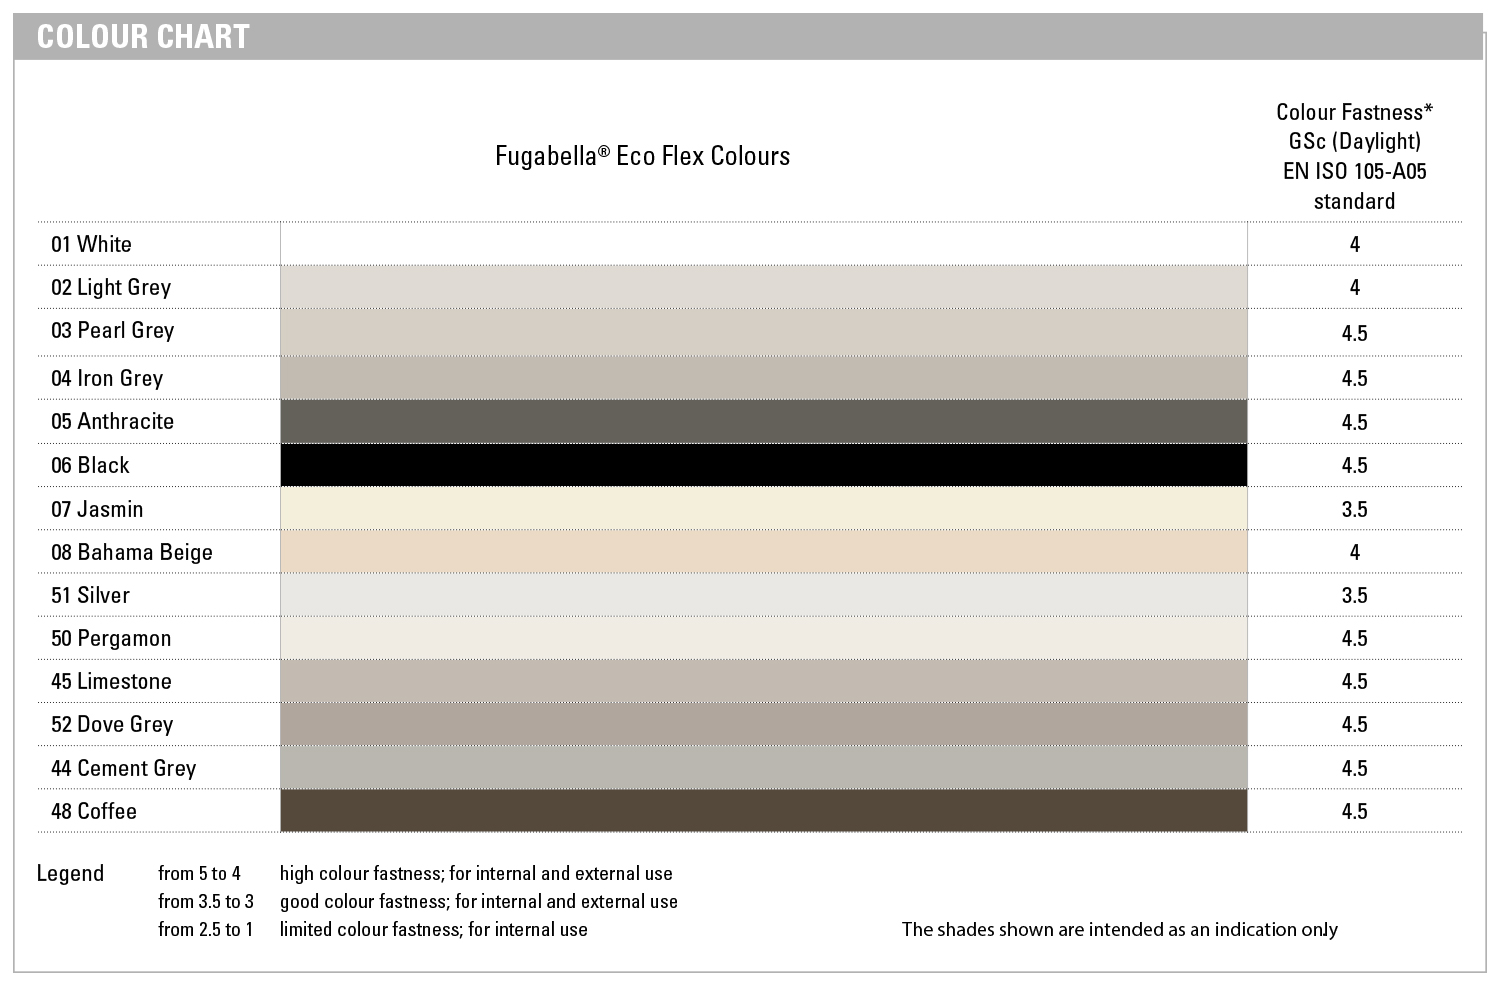 Kerakoll Fugabella Eco Flex Tile Grout Colour Chart